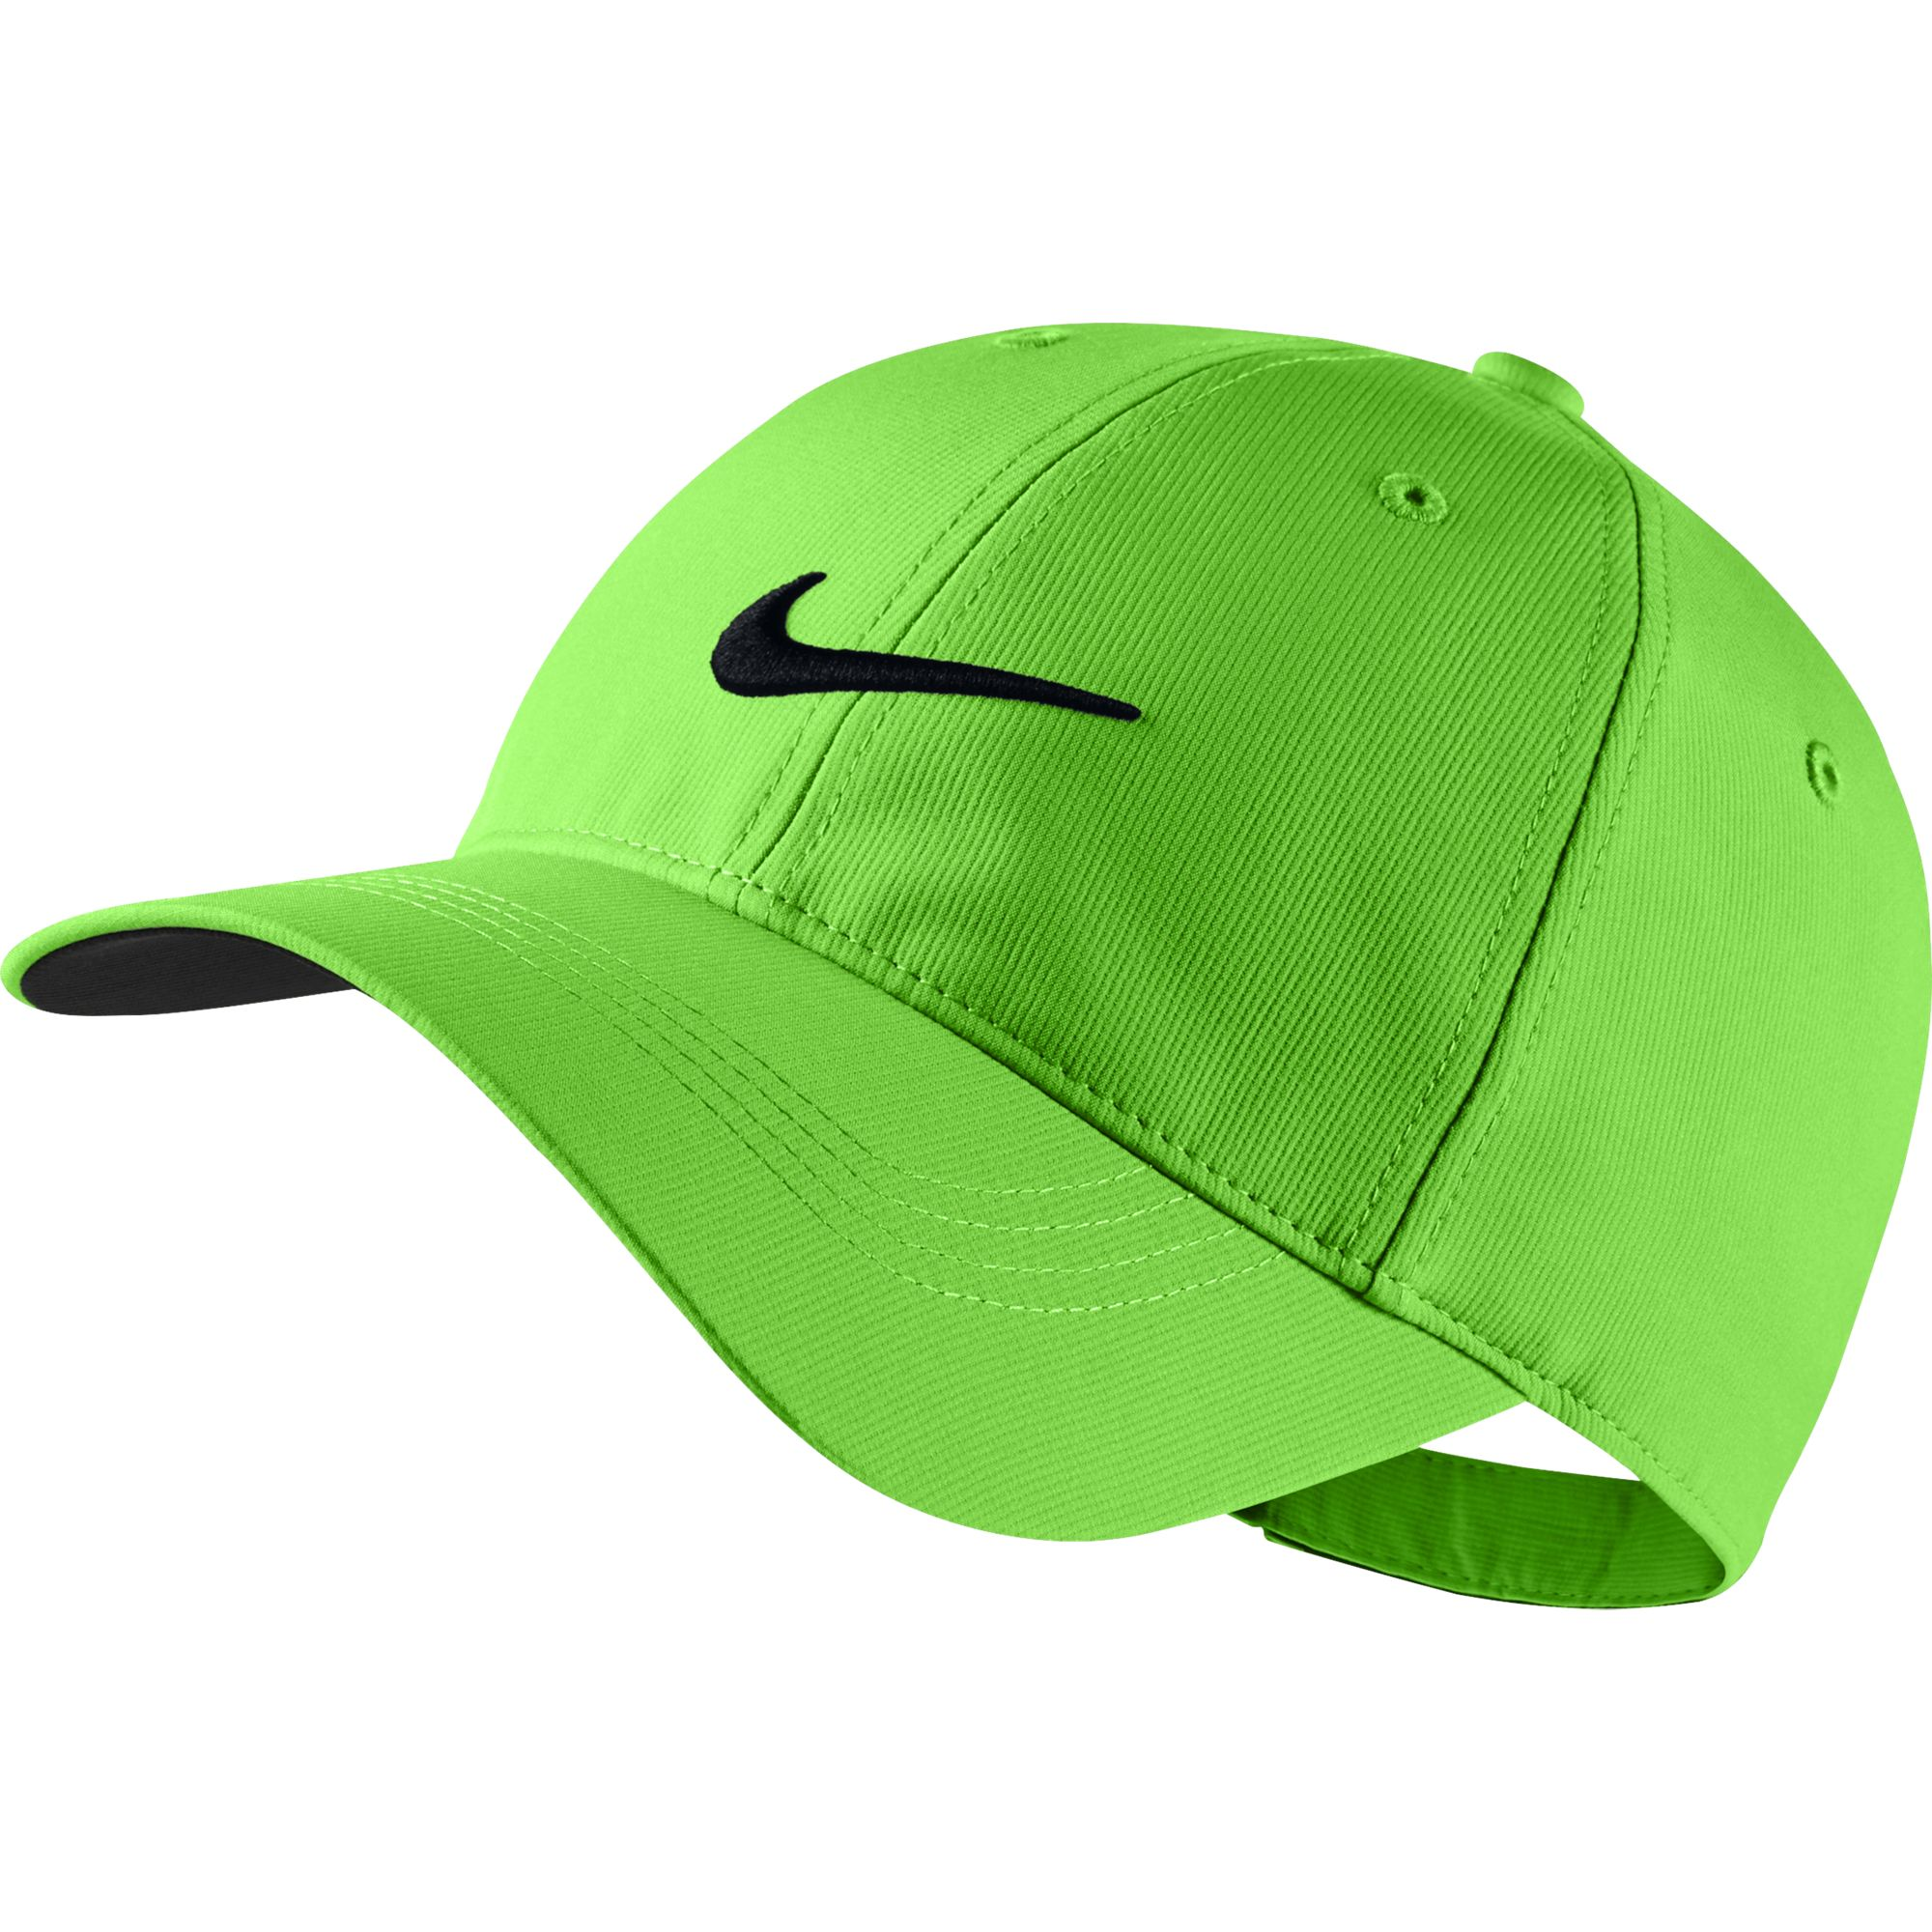 2016 Nike Golf LEGACY 91 TECH Hat 727042 Adjustable Cap - Pick a ...